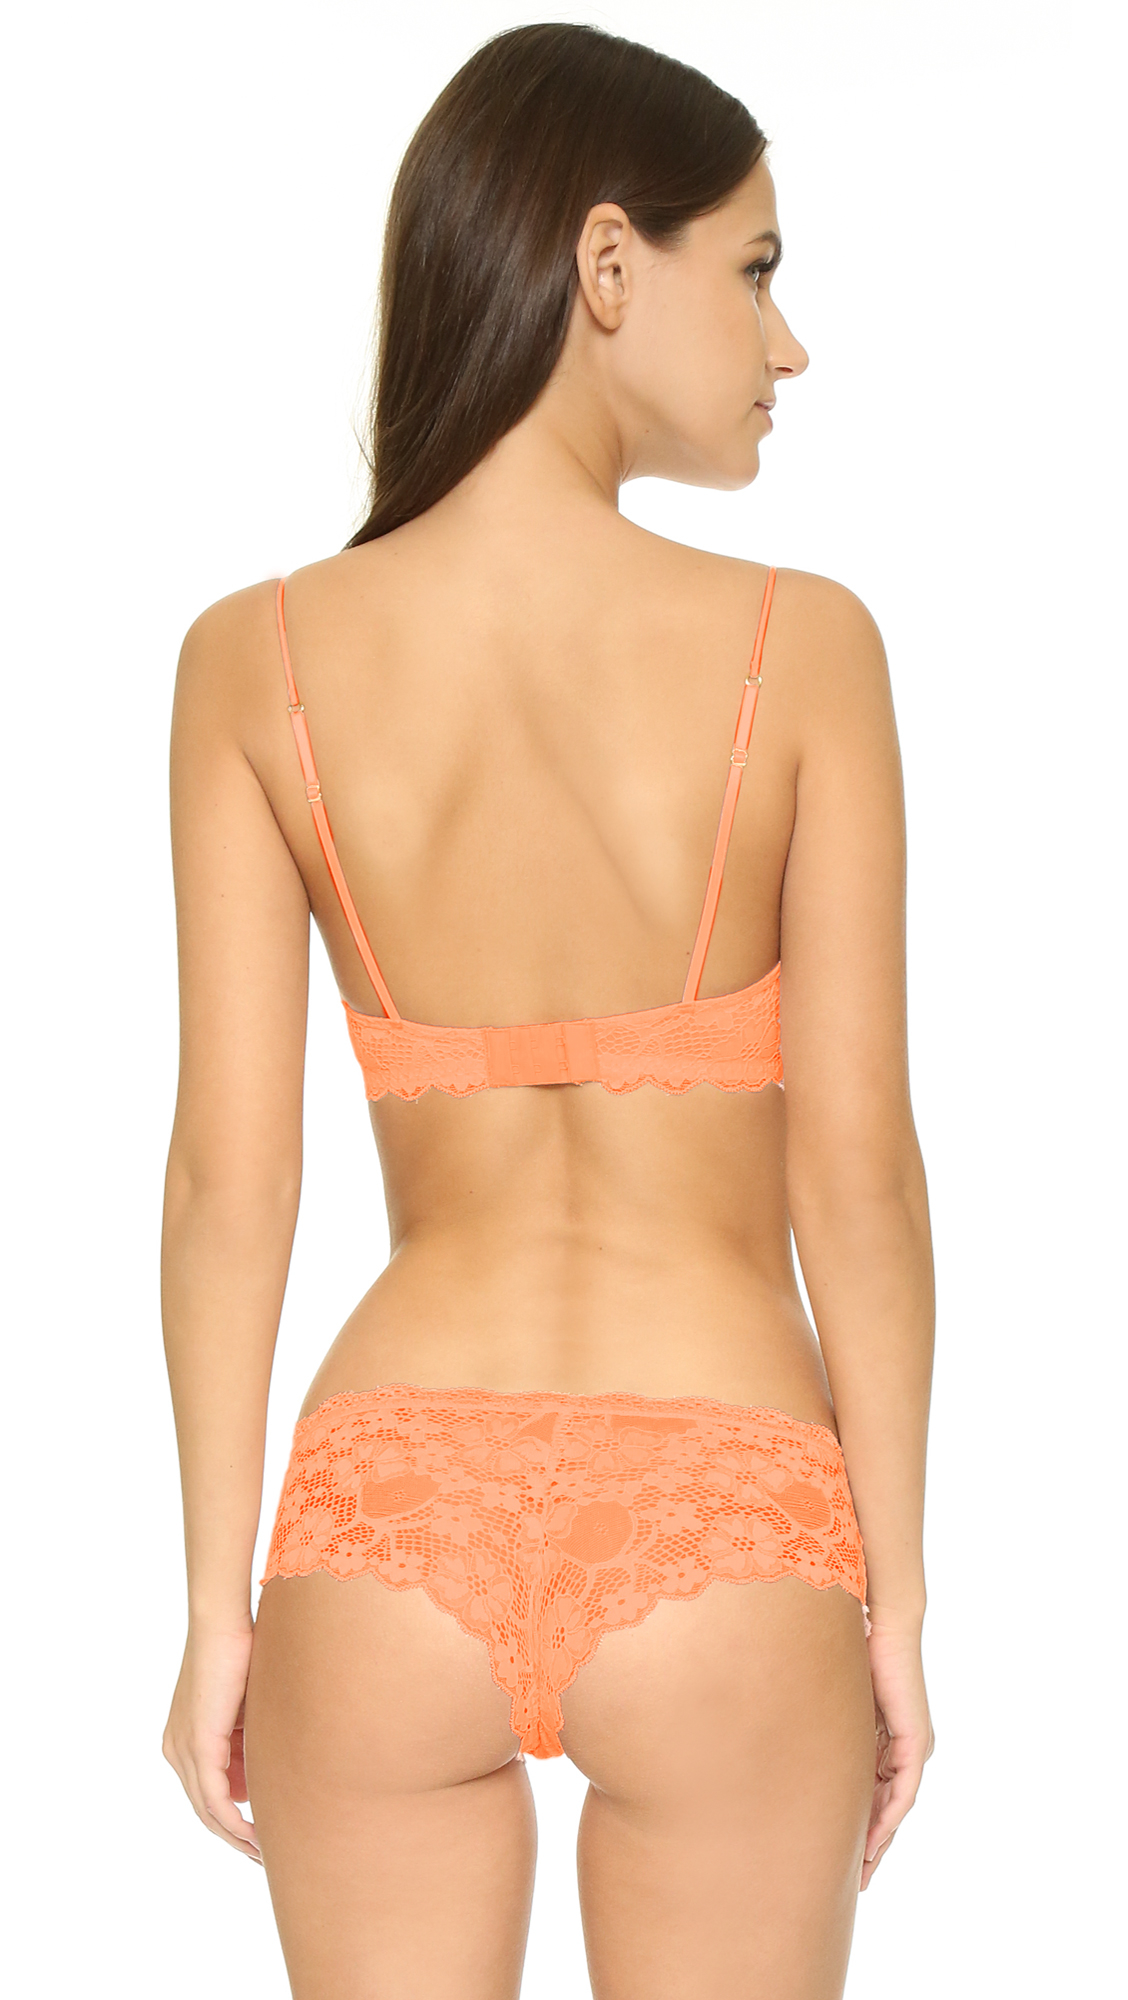 06717dcc306f1 Honeydew Intimates A Getaway Camellia Lace Bralette in Orange - Lyst